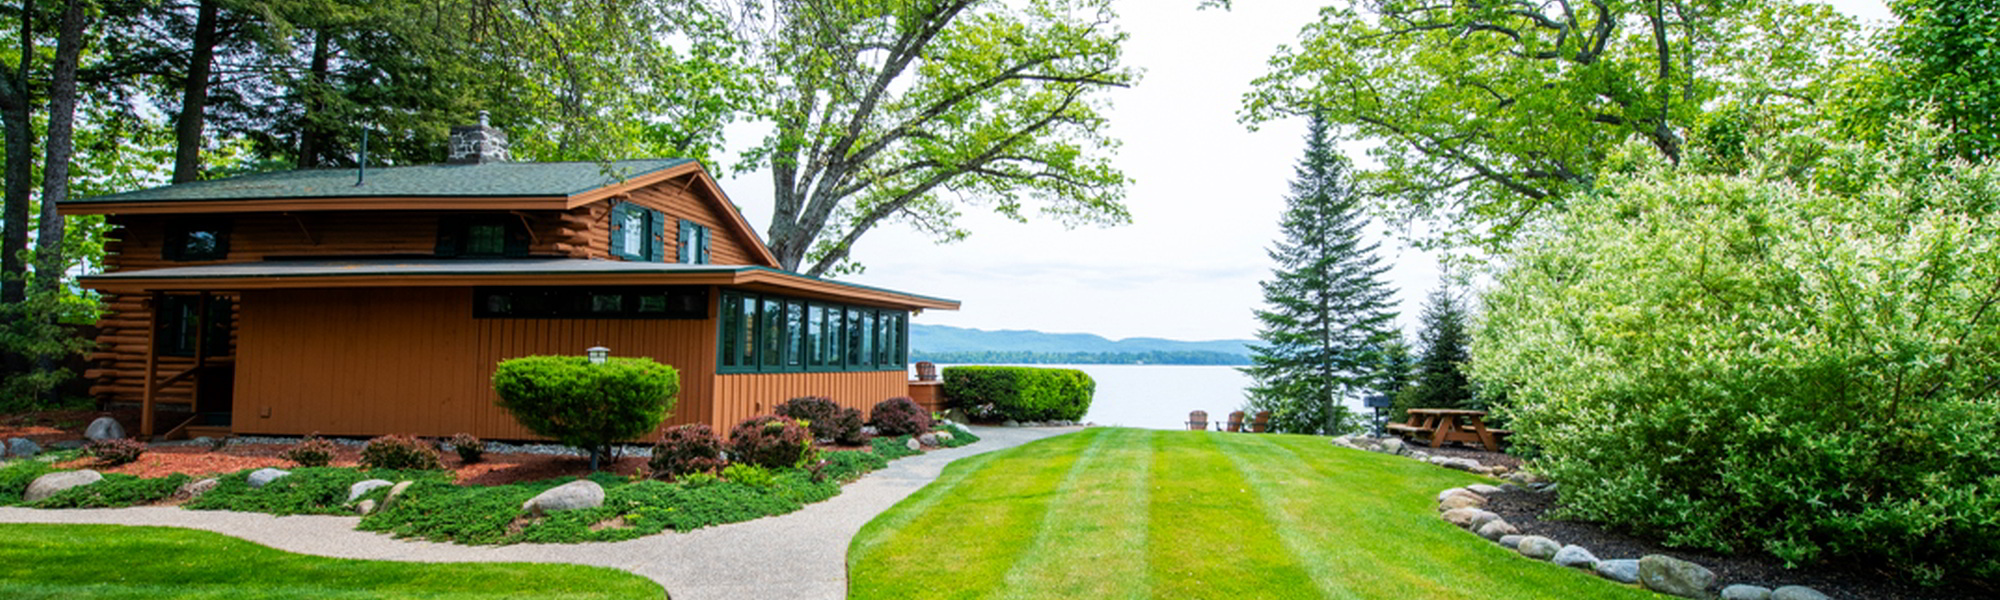 View of lake george with home